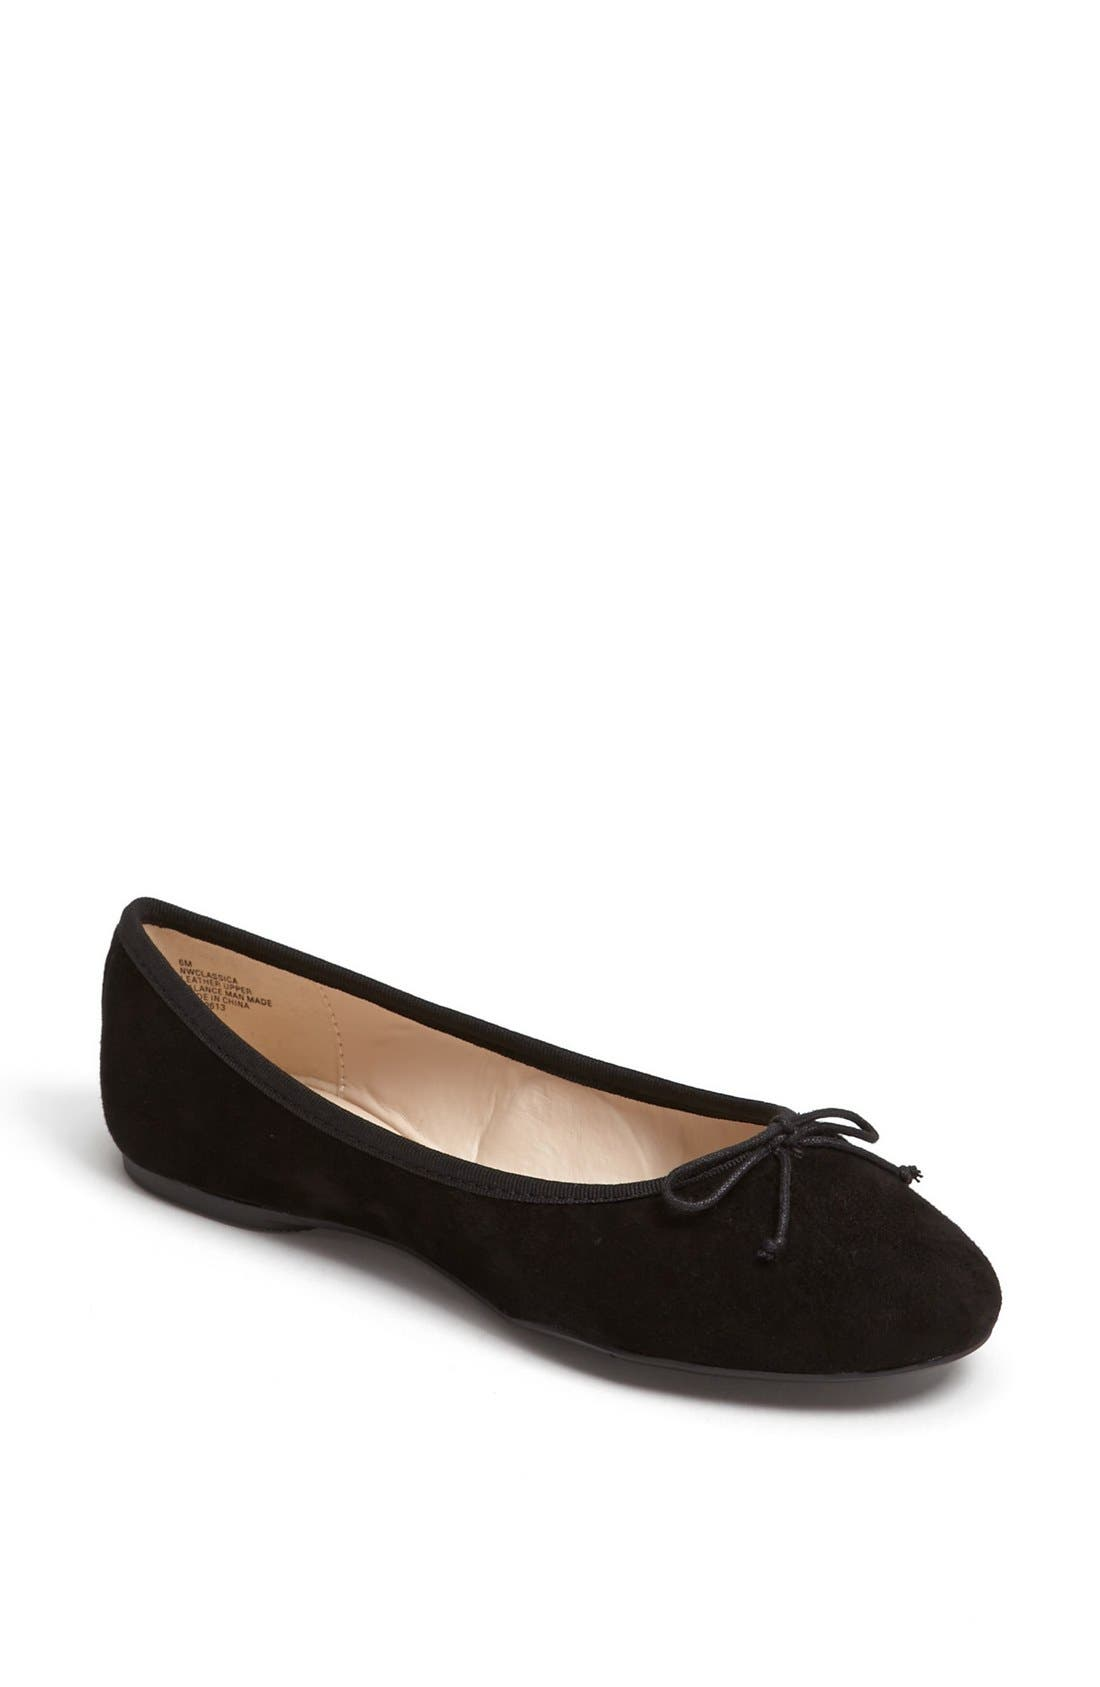 Alternate Image 1 Selected - Nine West 'Classica' Ballet Flat (Online Only)